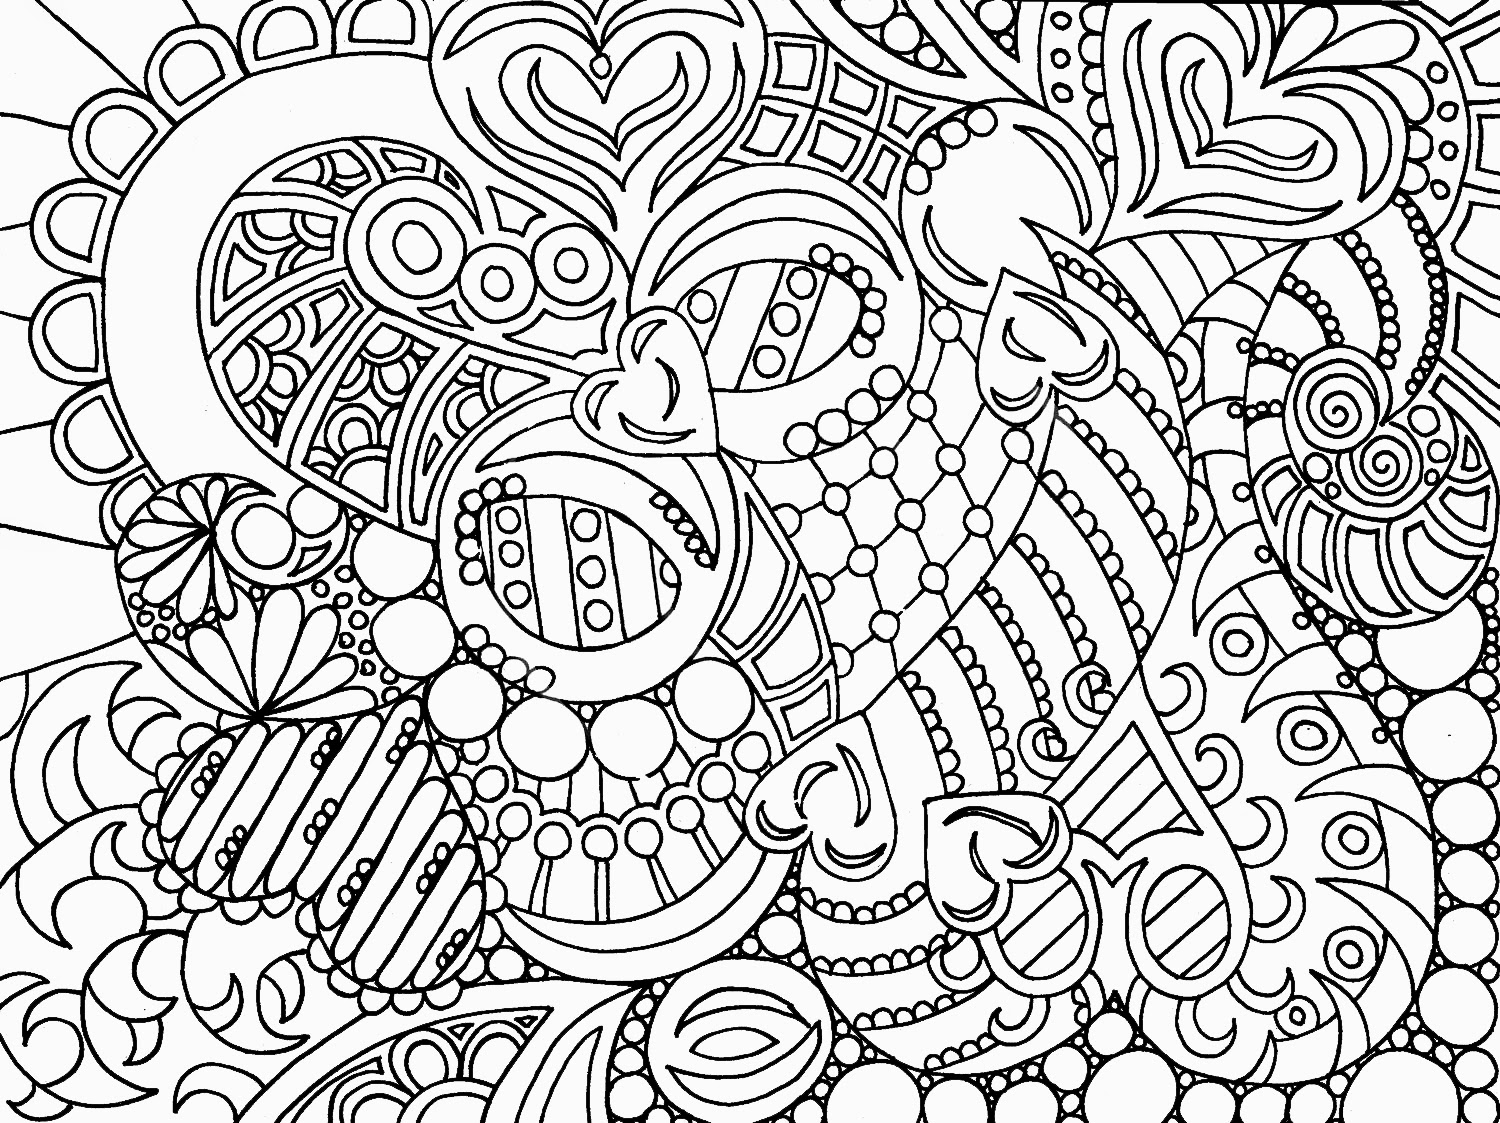 Coloring pages for kids coloring pages blog for Therapeutic coloring pages for children